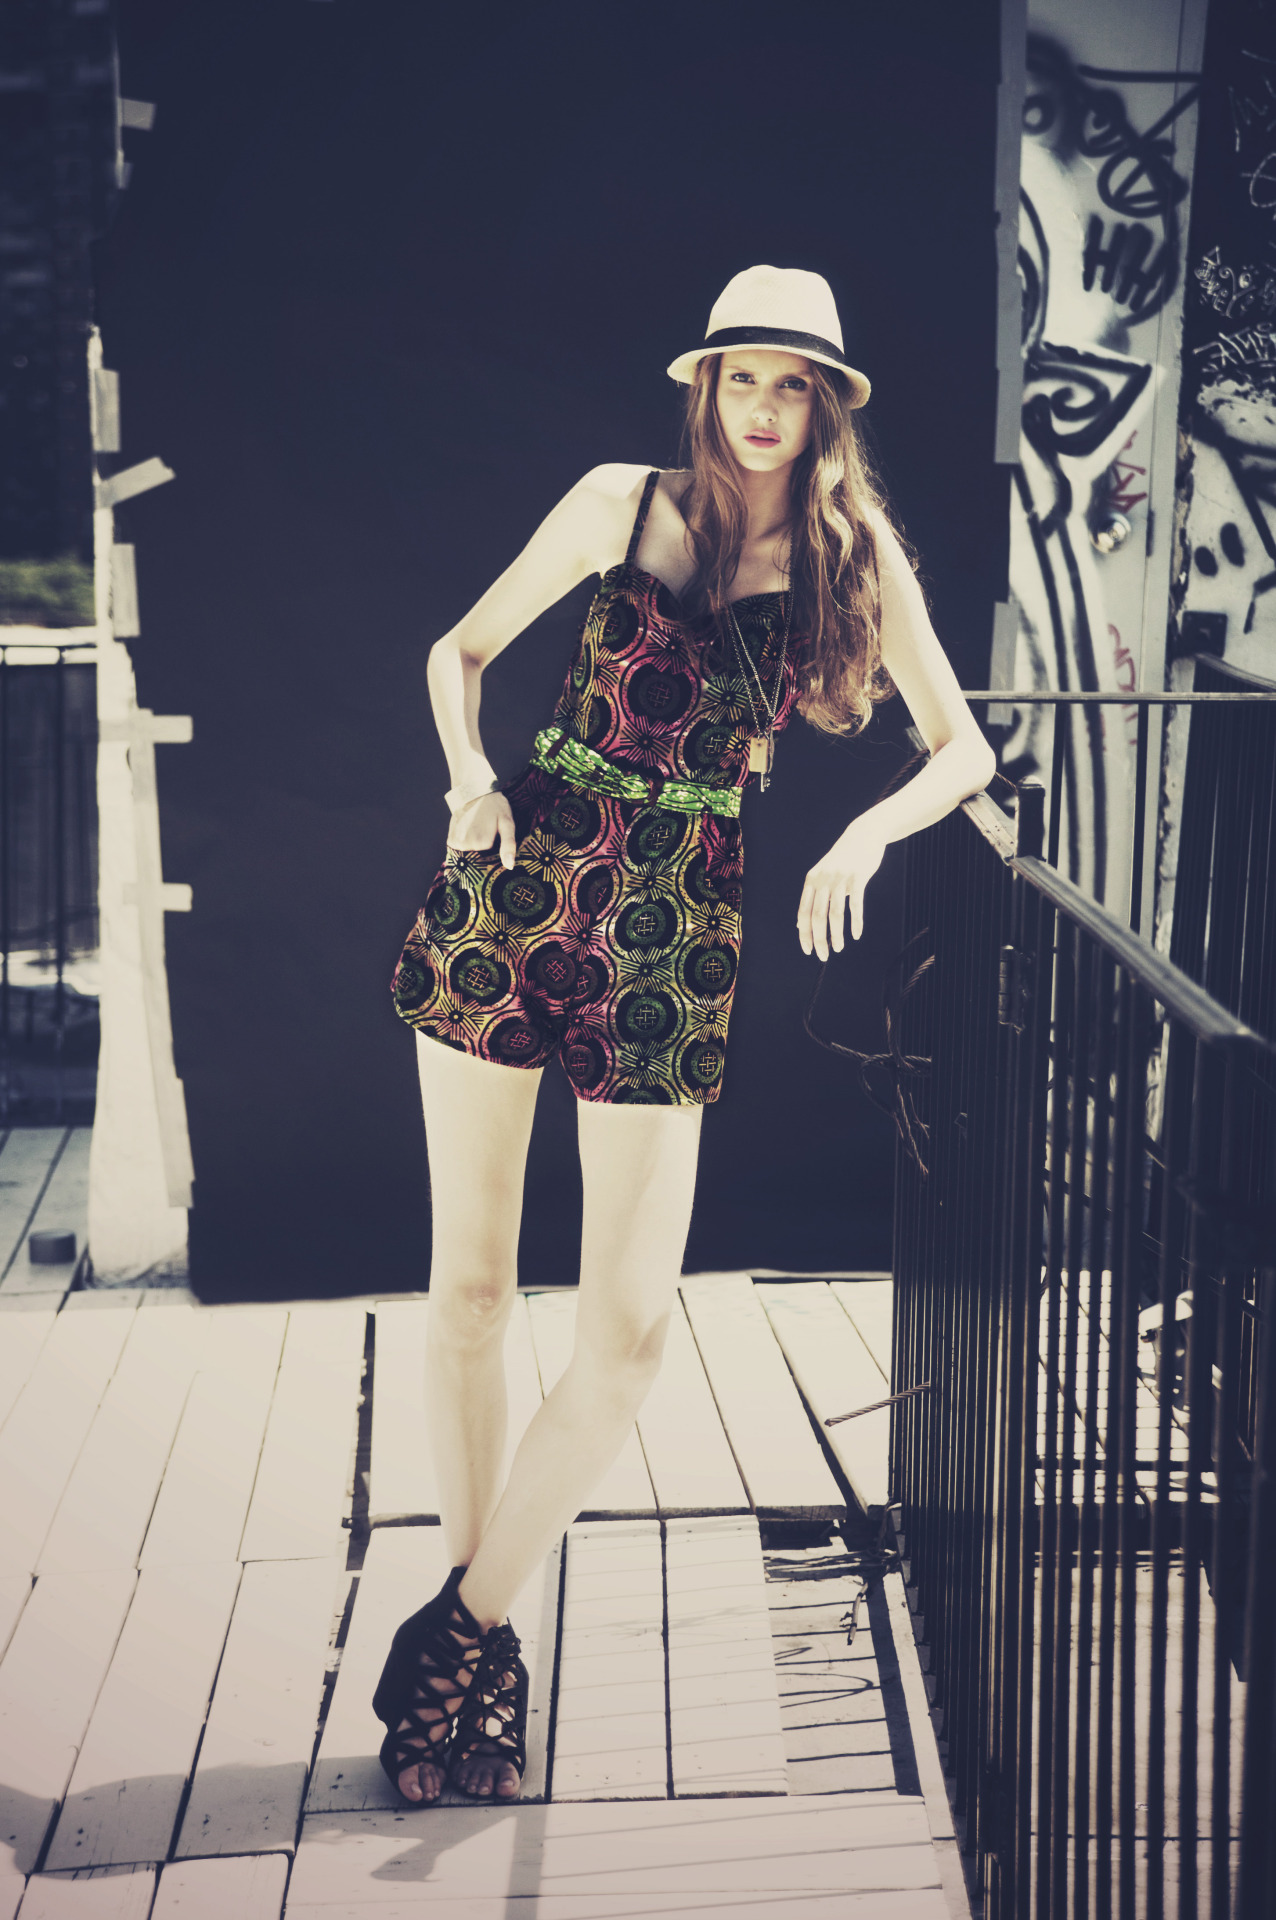 AFIA technicolor batik romper   editing: Abby Ross  hair & makeup: Katie Robinson  styling & design: Meghan Sebold